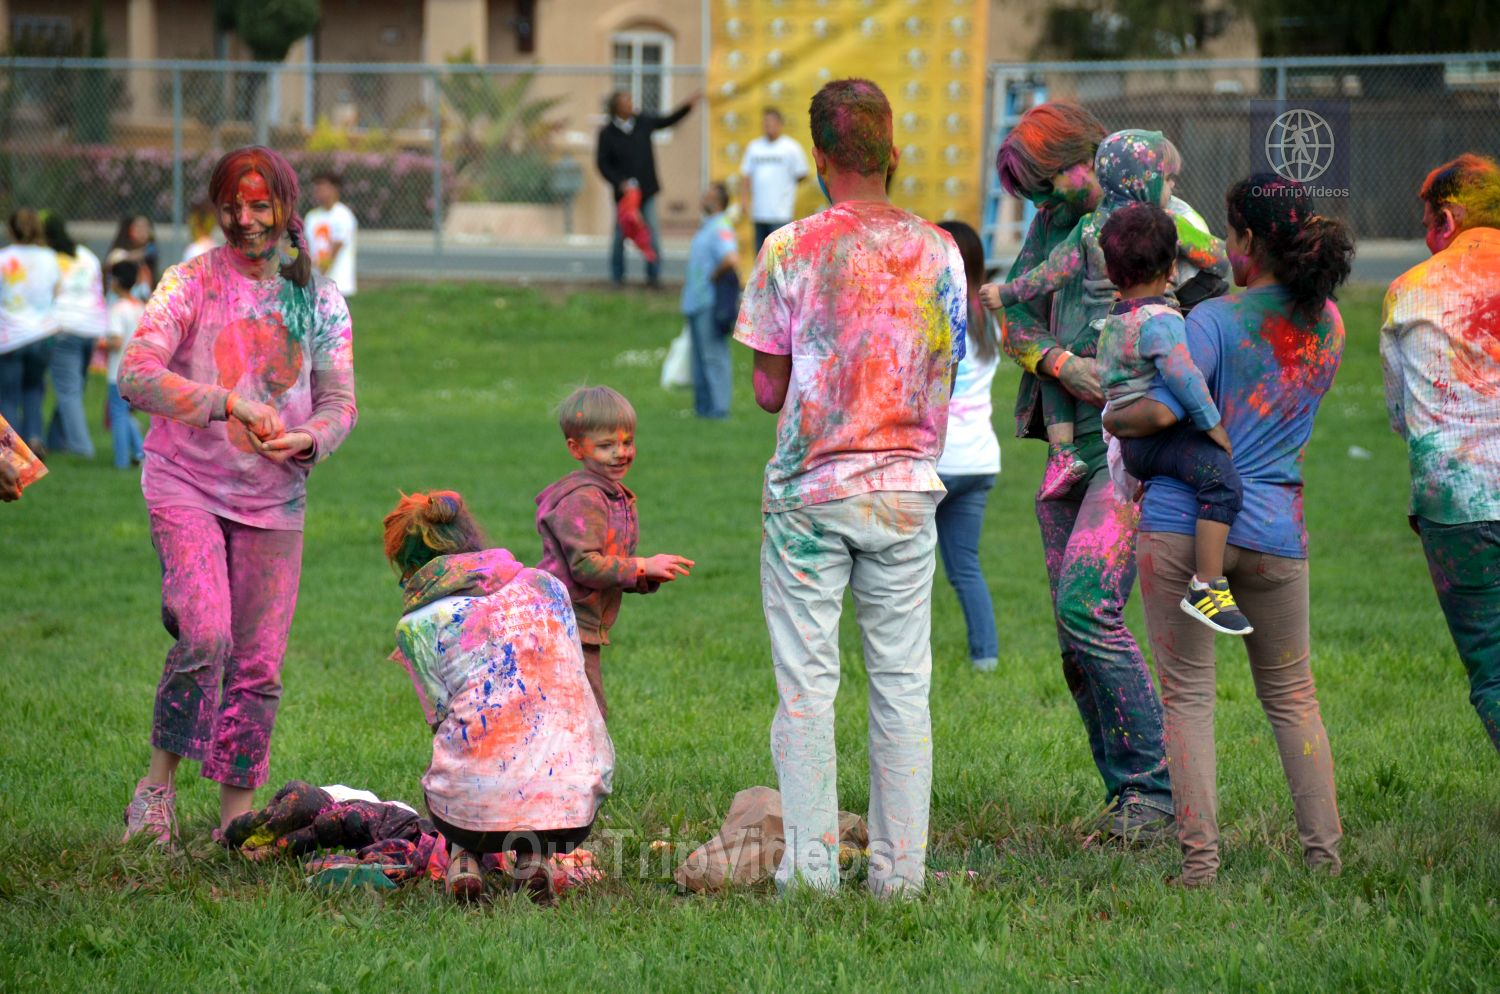 Festival of Colors - FOG and UPMA Holi, Fremont,CA, USA - Picture 11 of 25